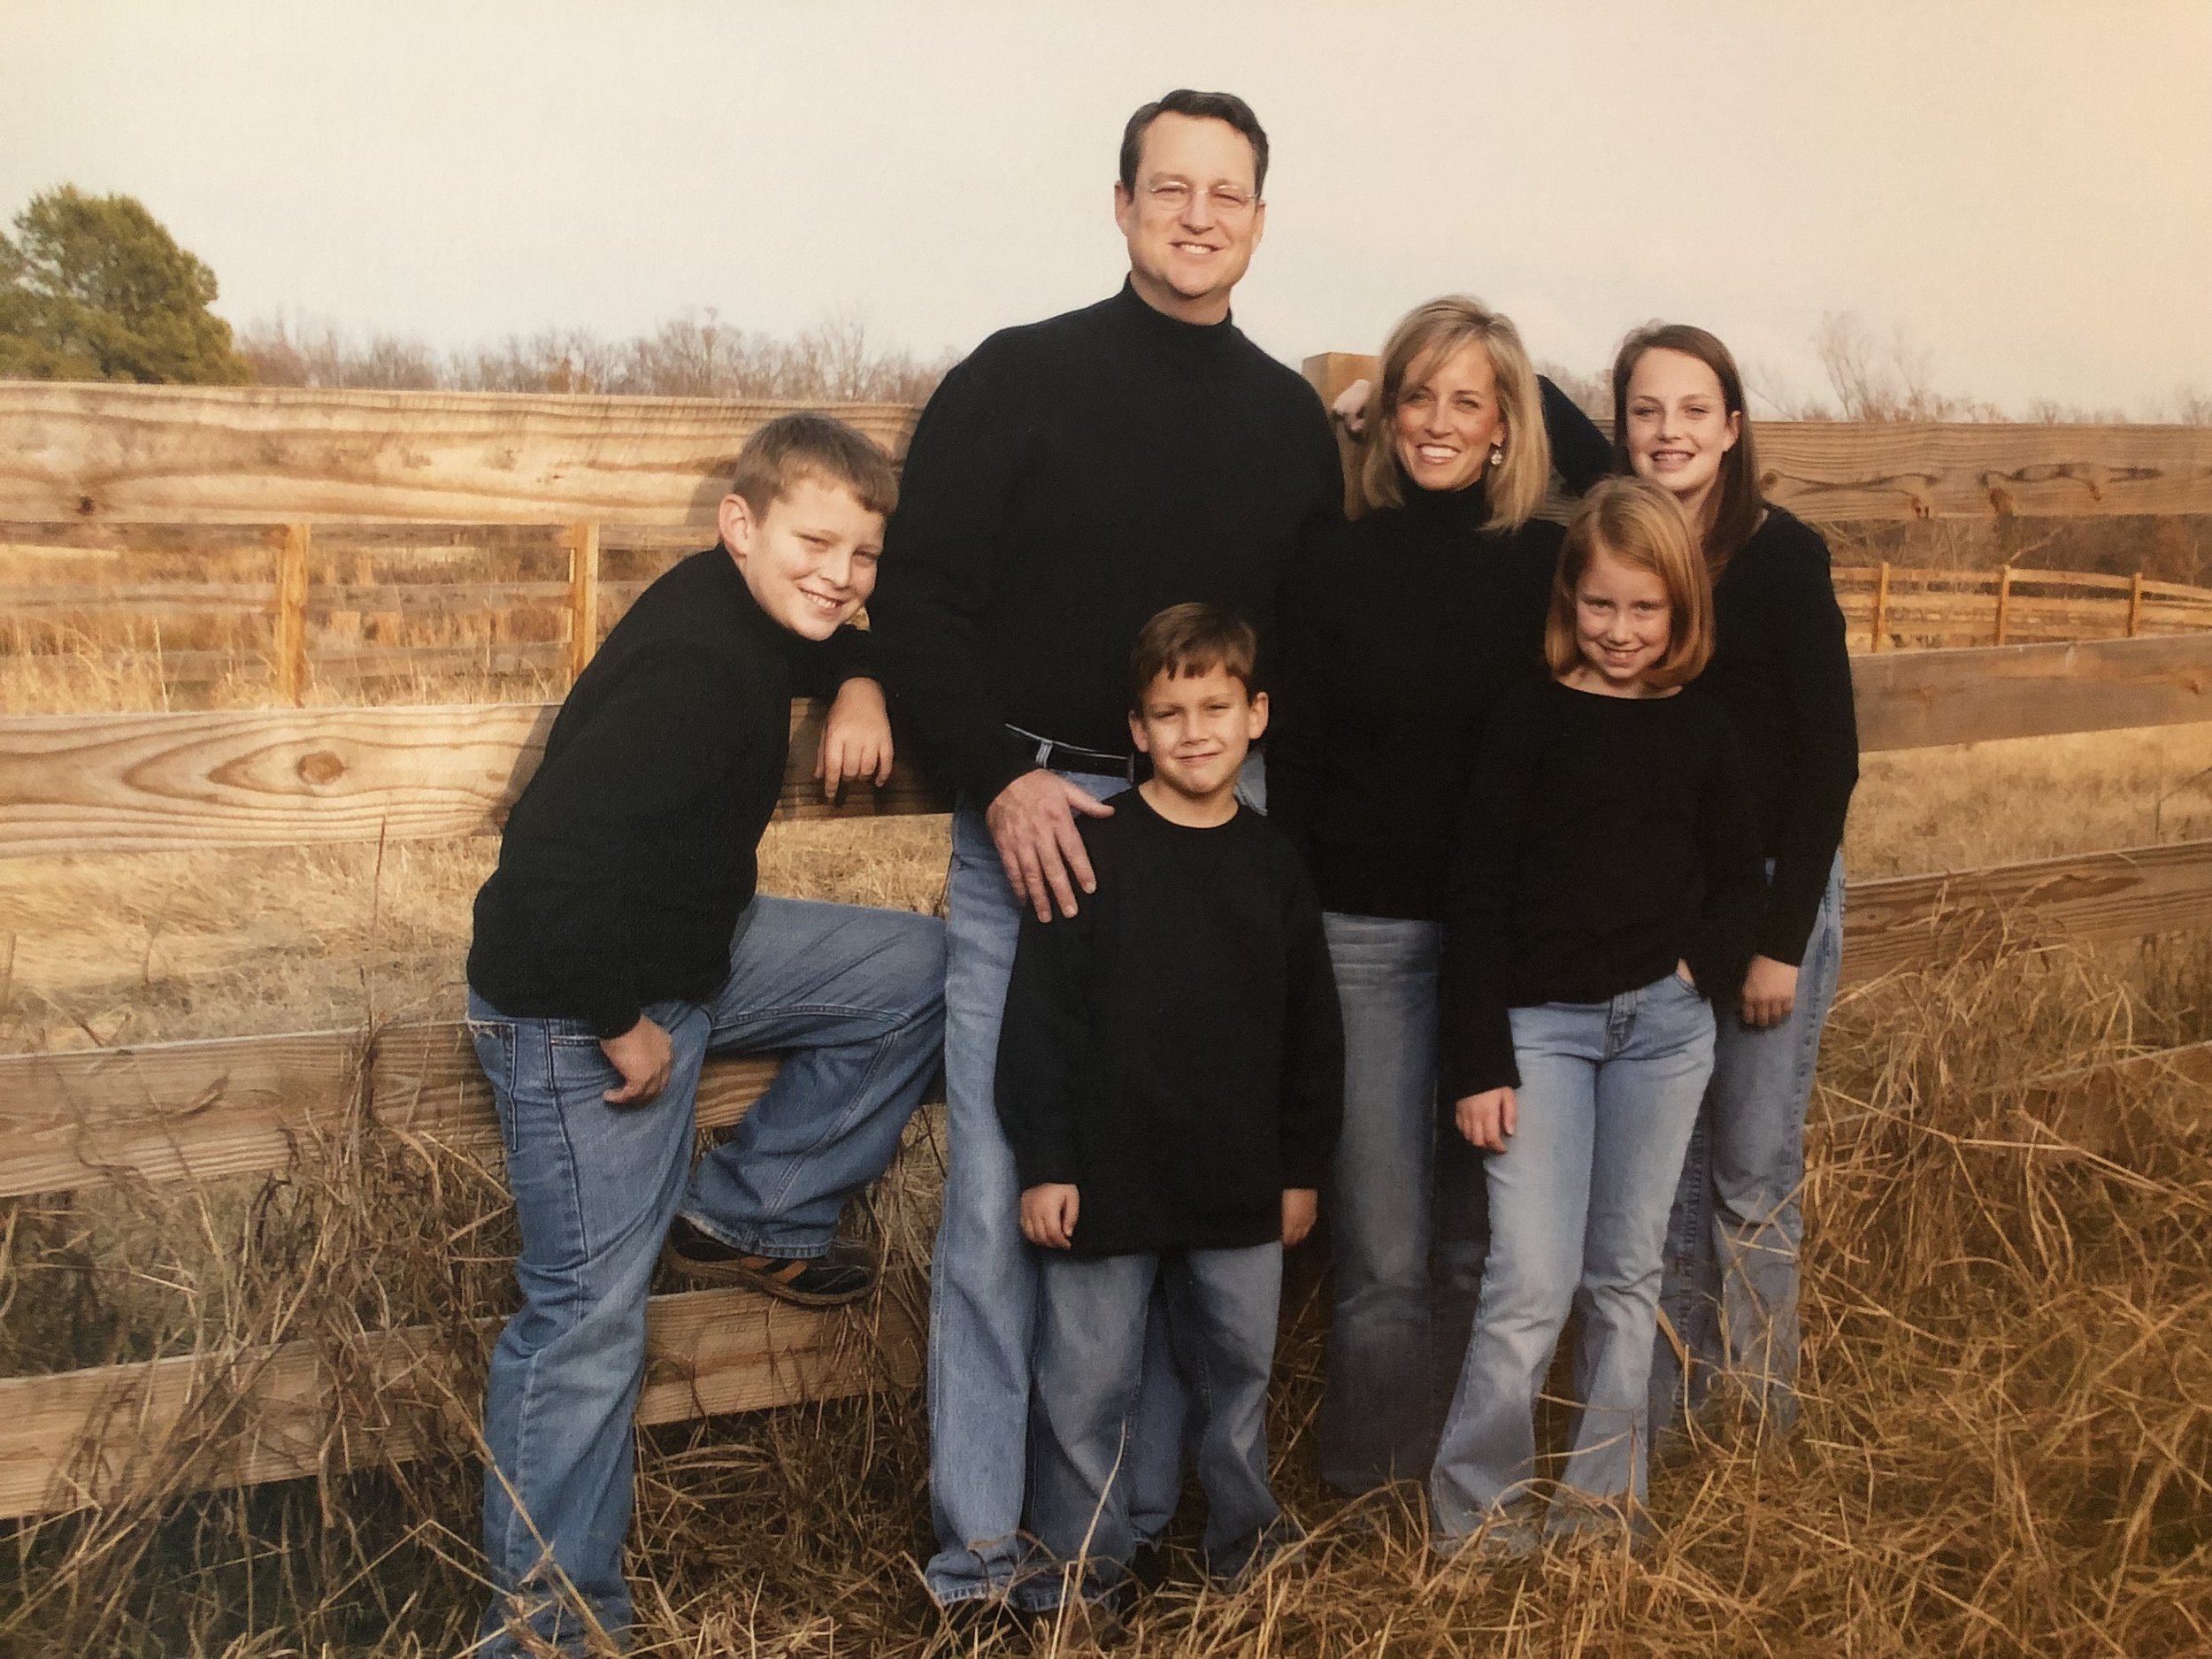 Our young family in the beginning years of our calling.